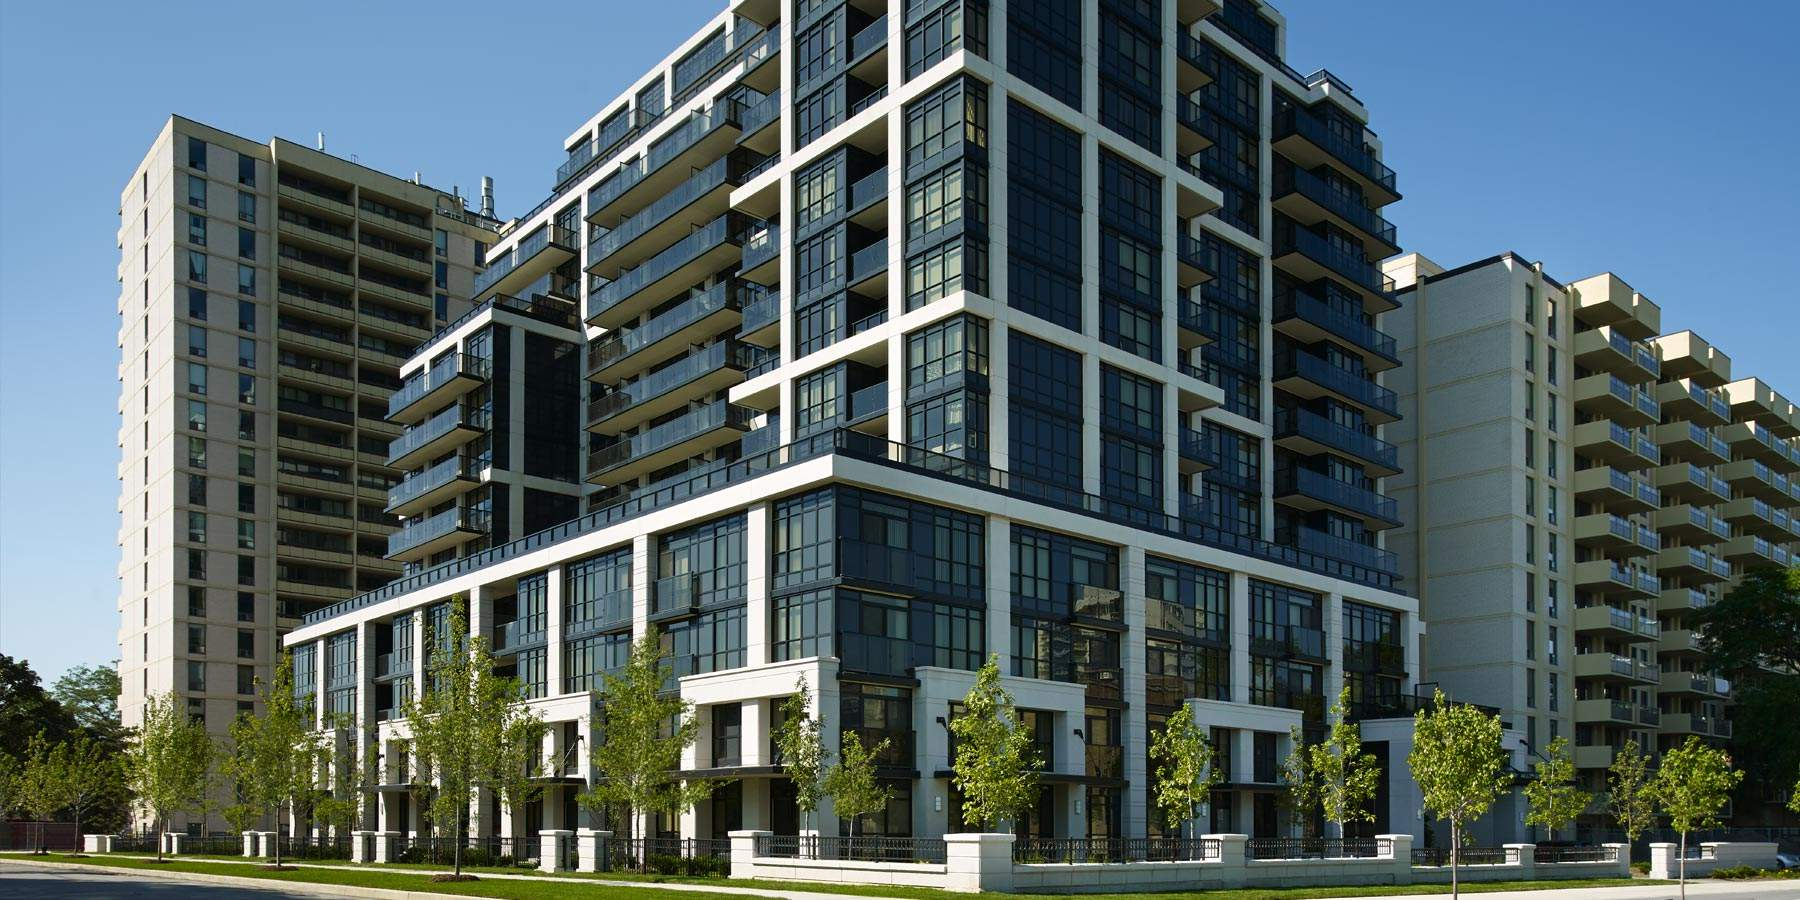 KG Roehampton Luxury Condo Rental Apartments at 305 Roehampton Avenue Yonge and Eglinton